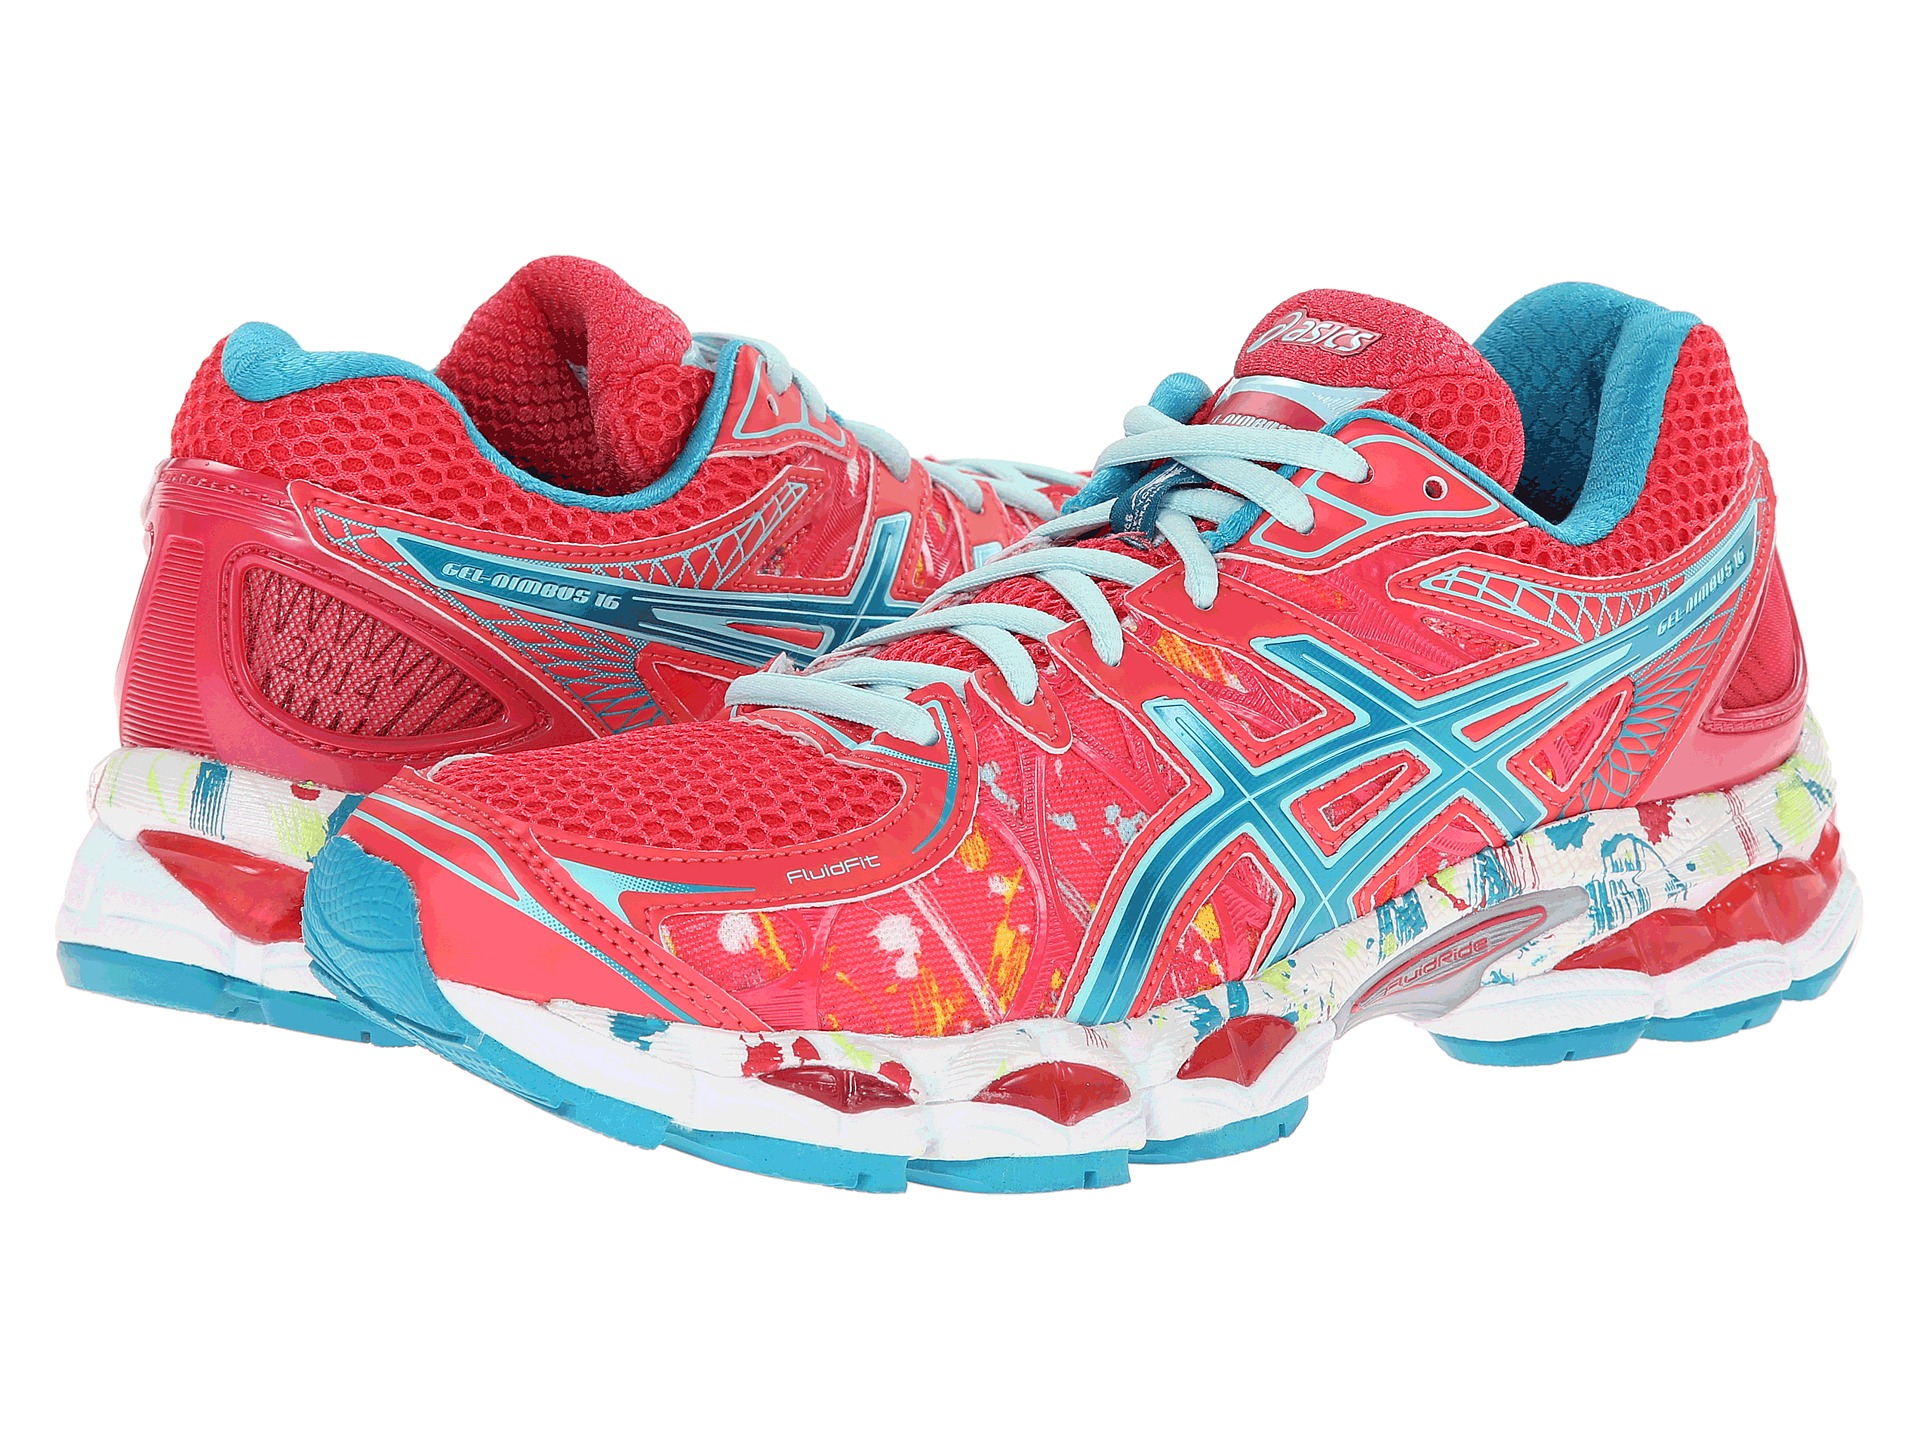 Buy latest asics gel nimbus > Up to OFF51% Discounted